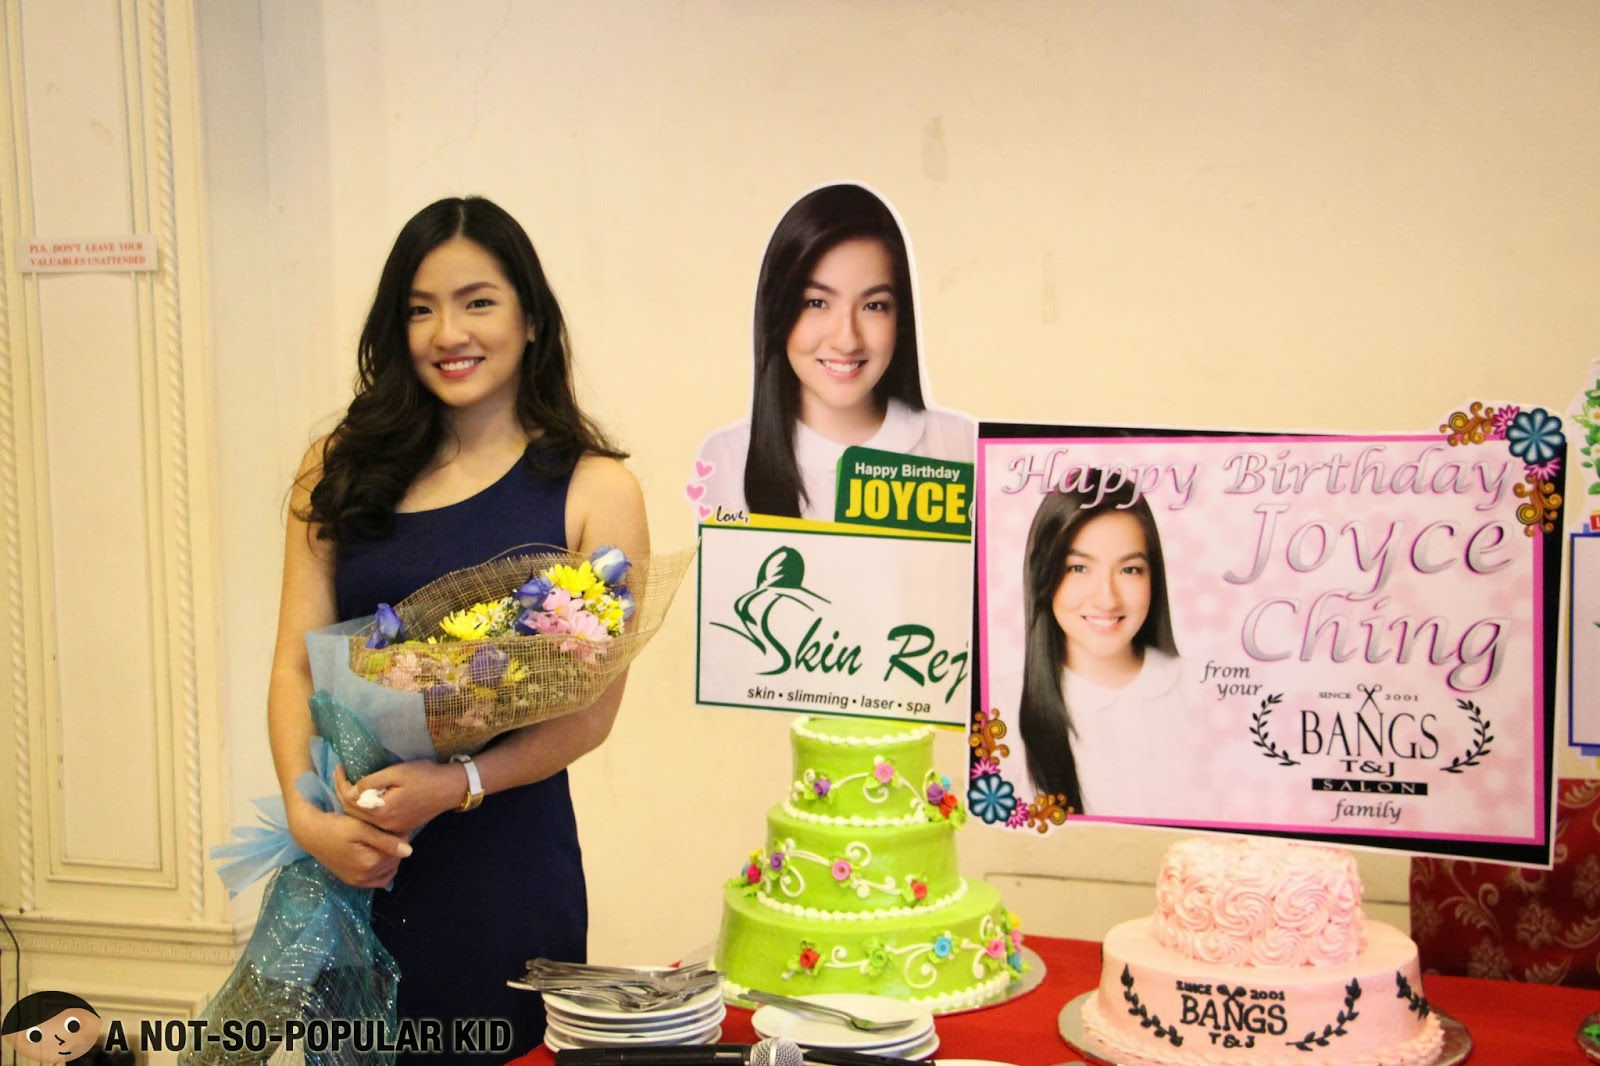 Joyce Ching with the cakes for her 19th Birthday